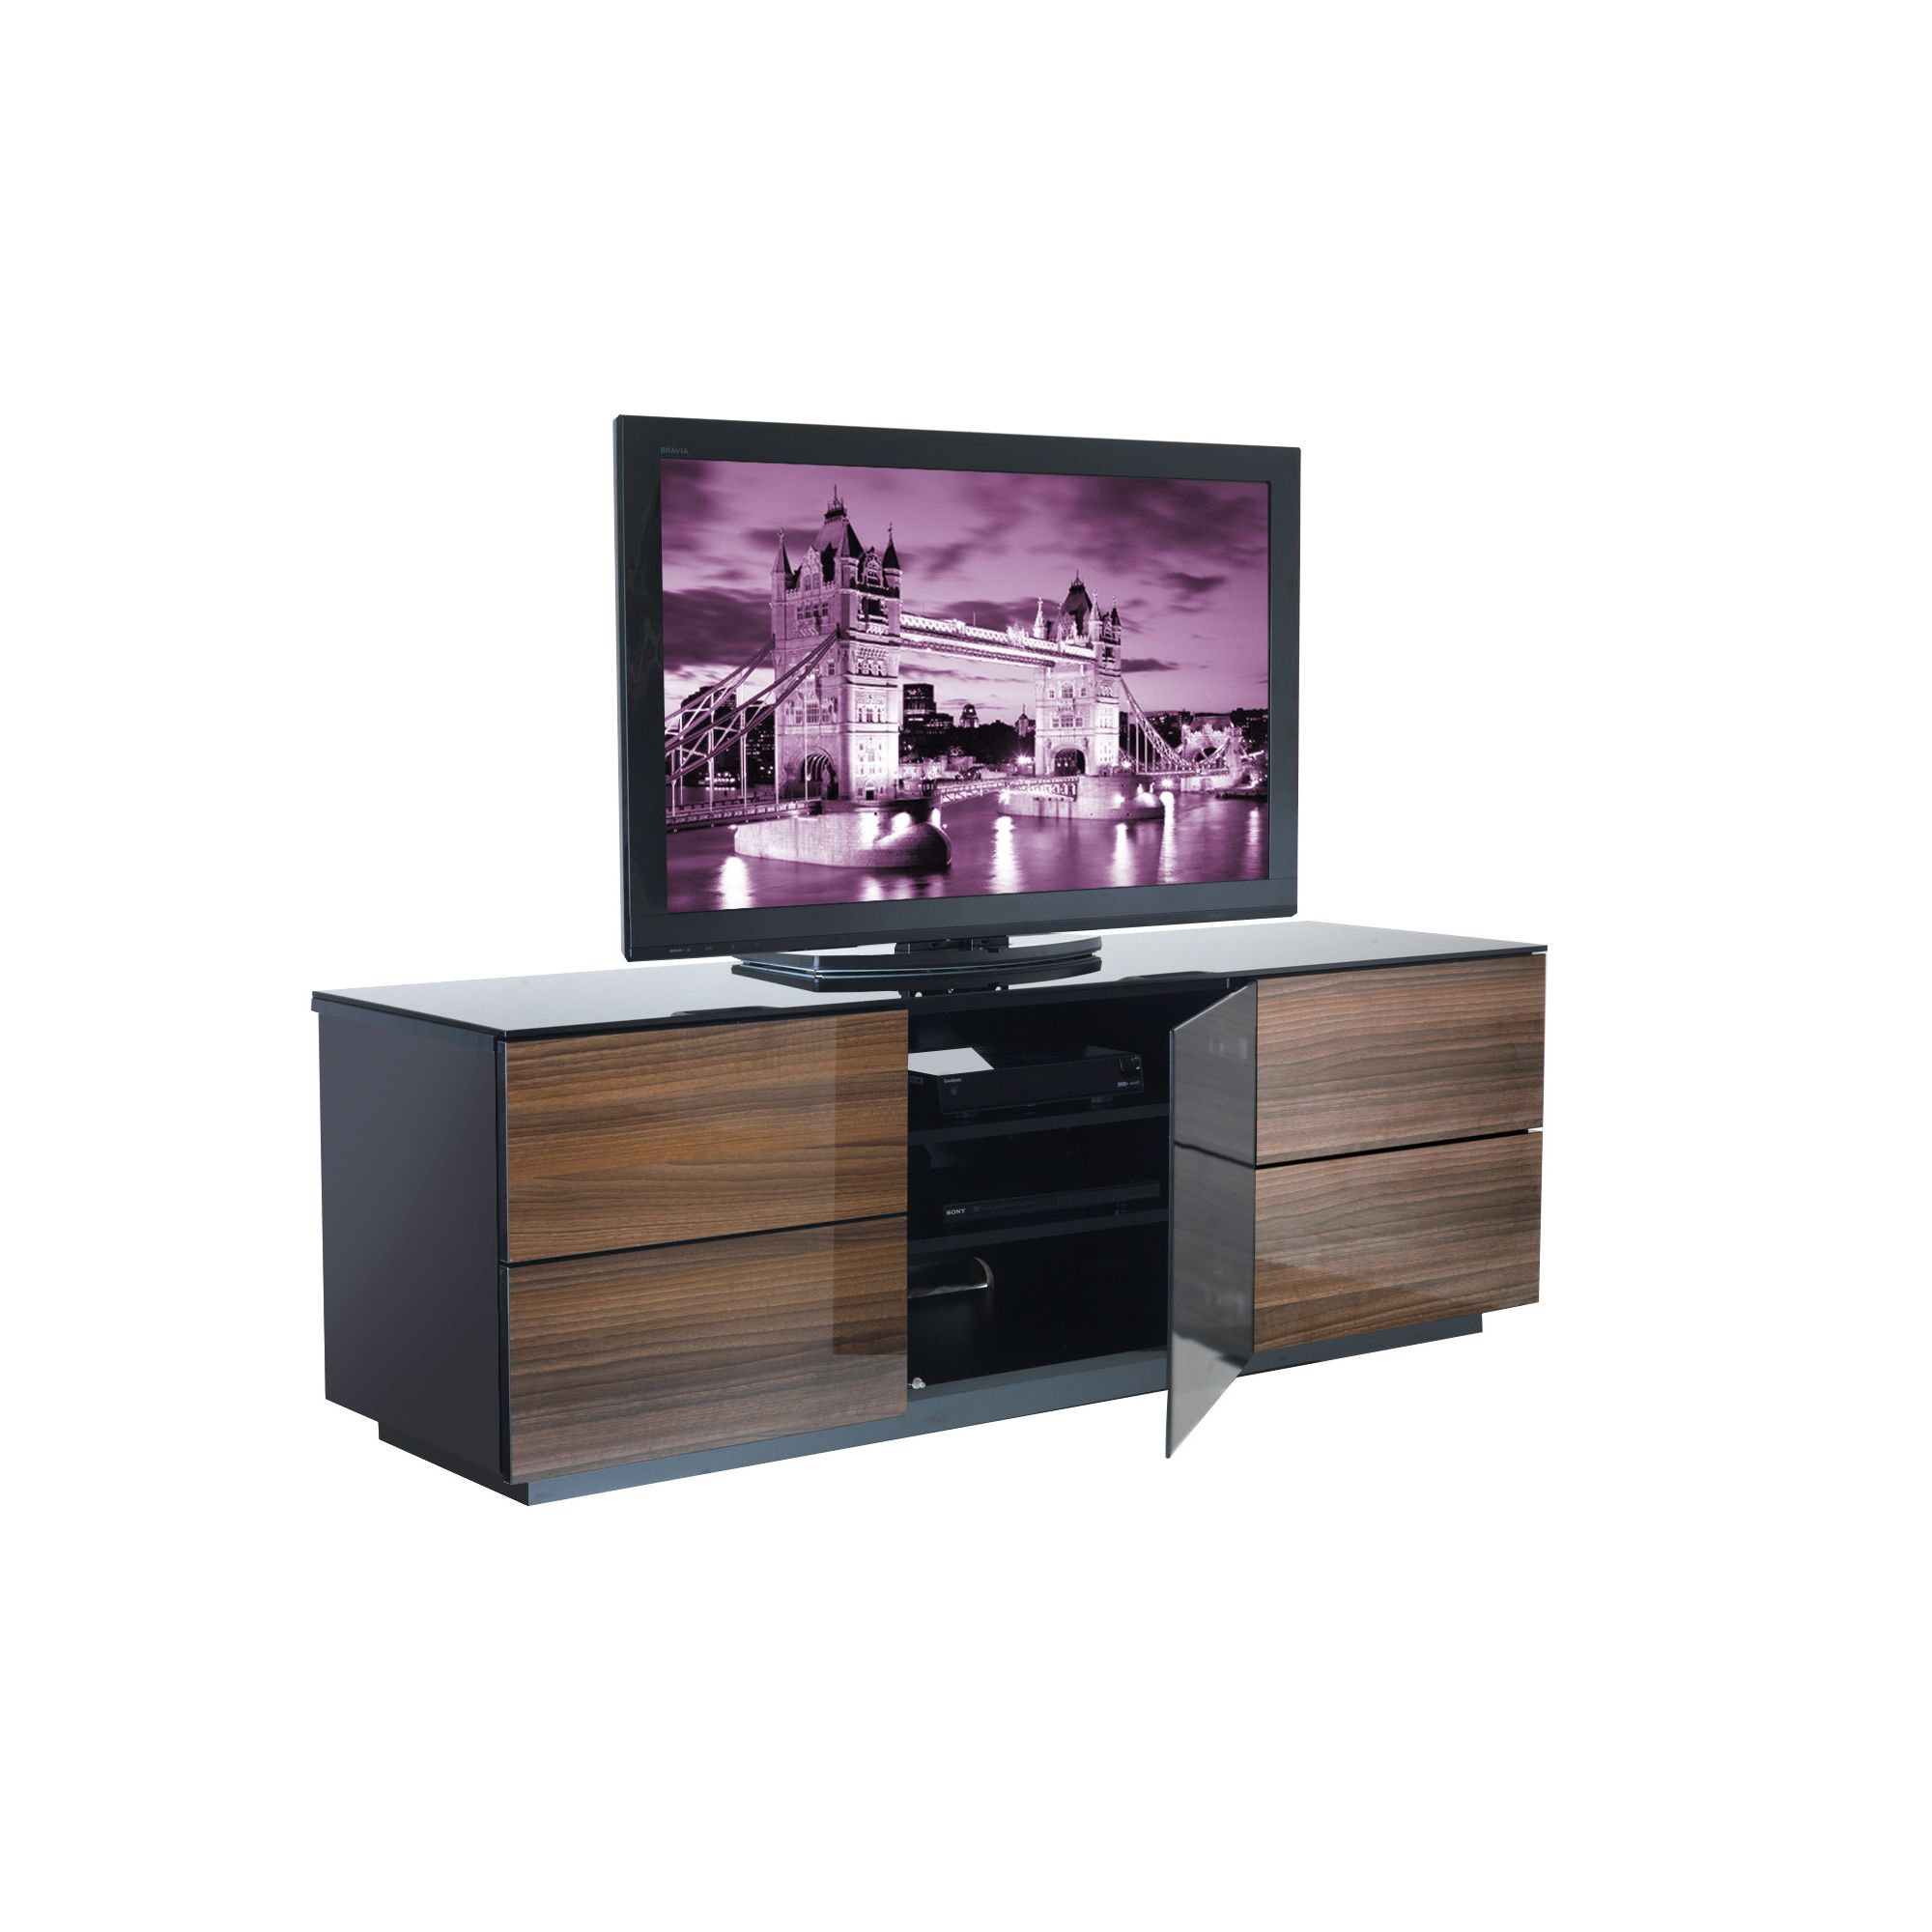 UK-CF City Scape London TV Stand - Walnut at Tesco Direct